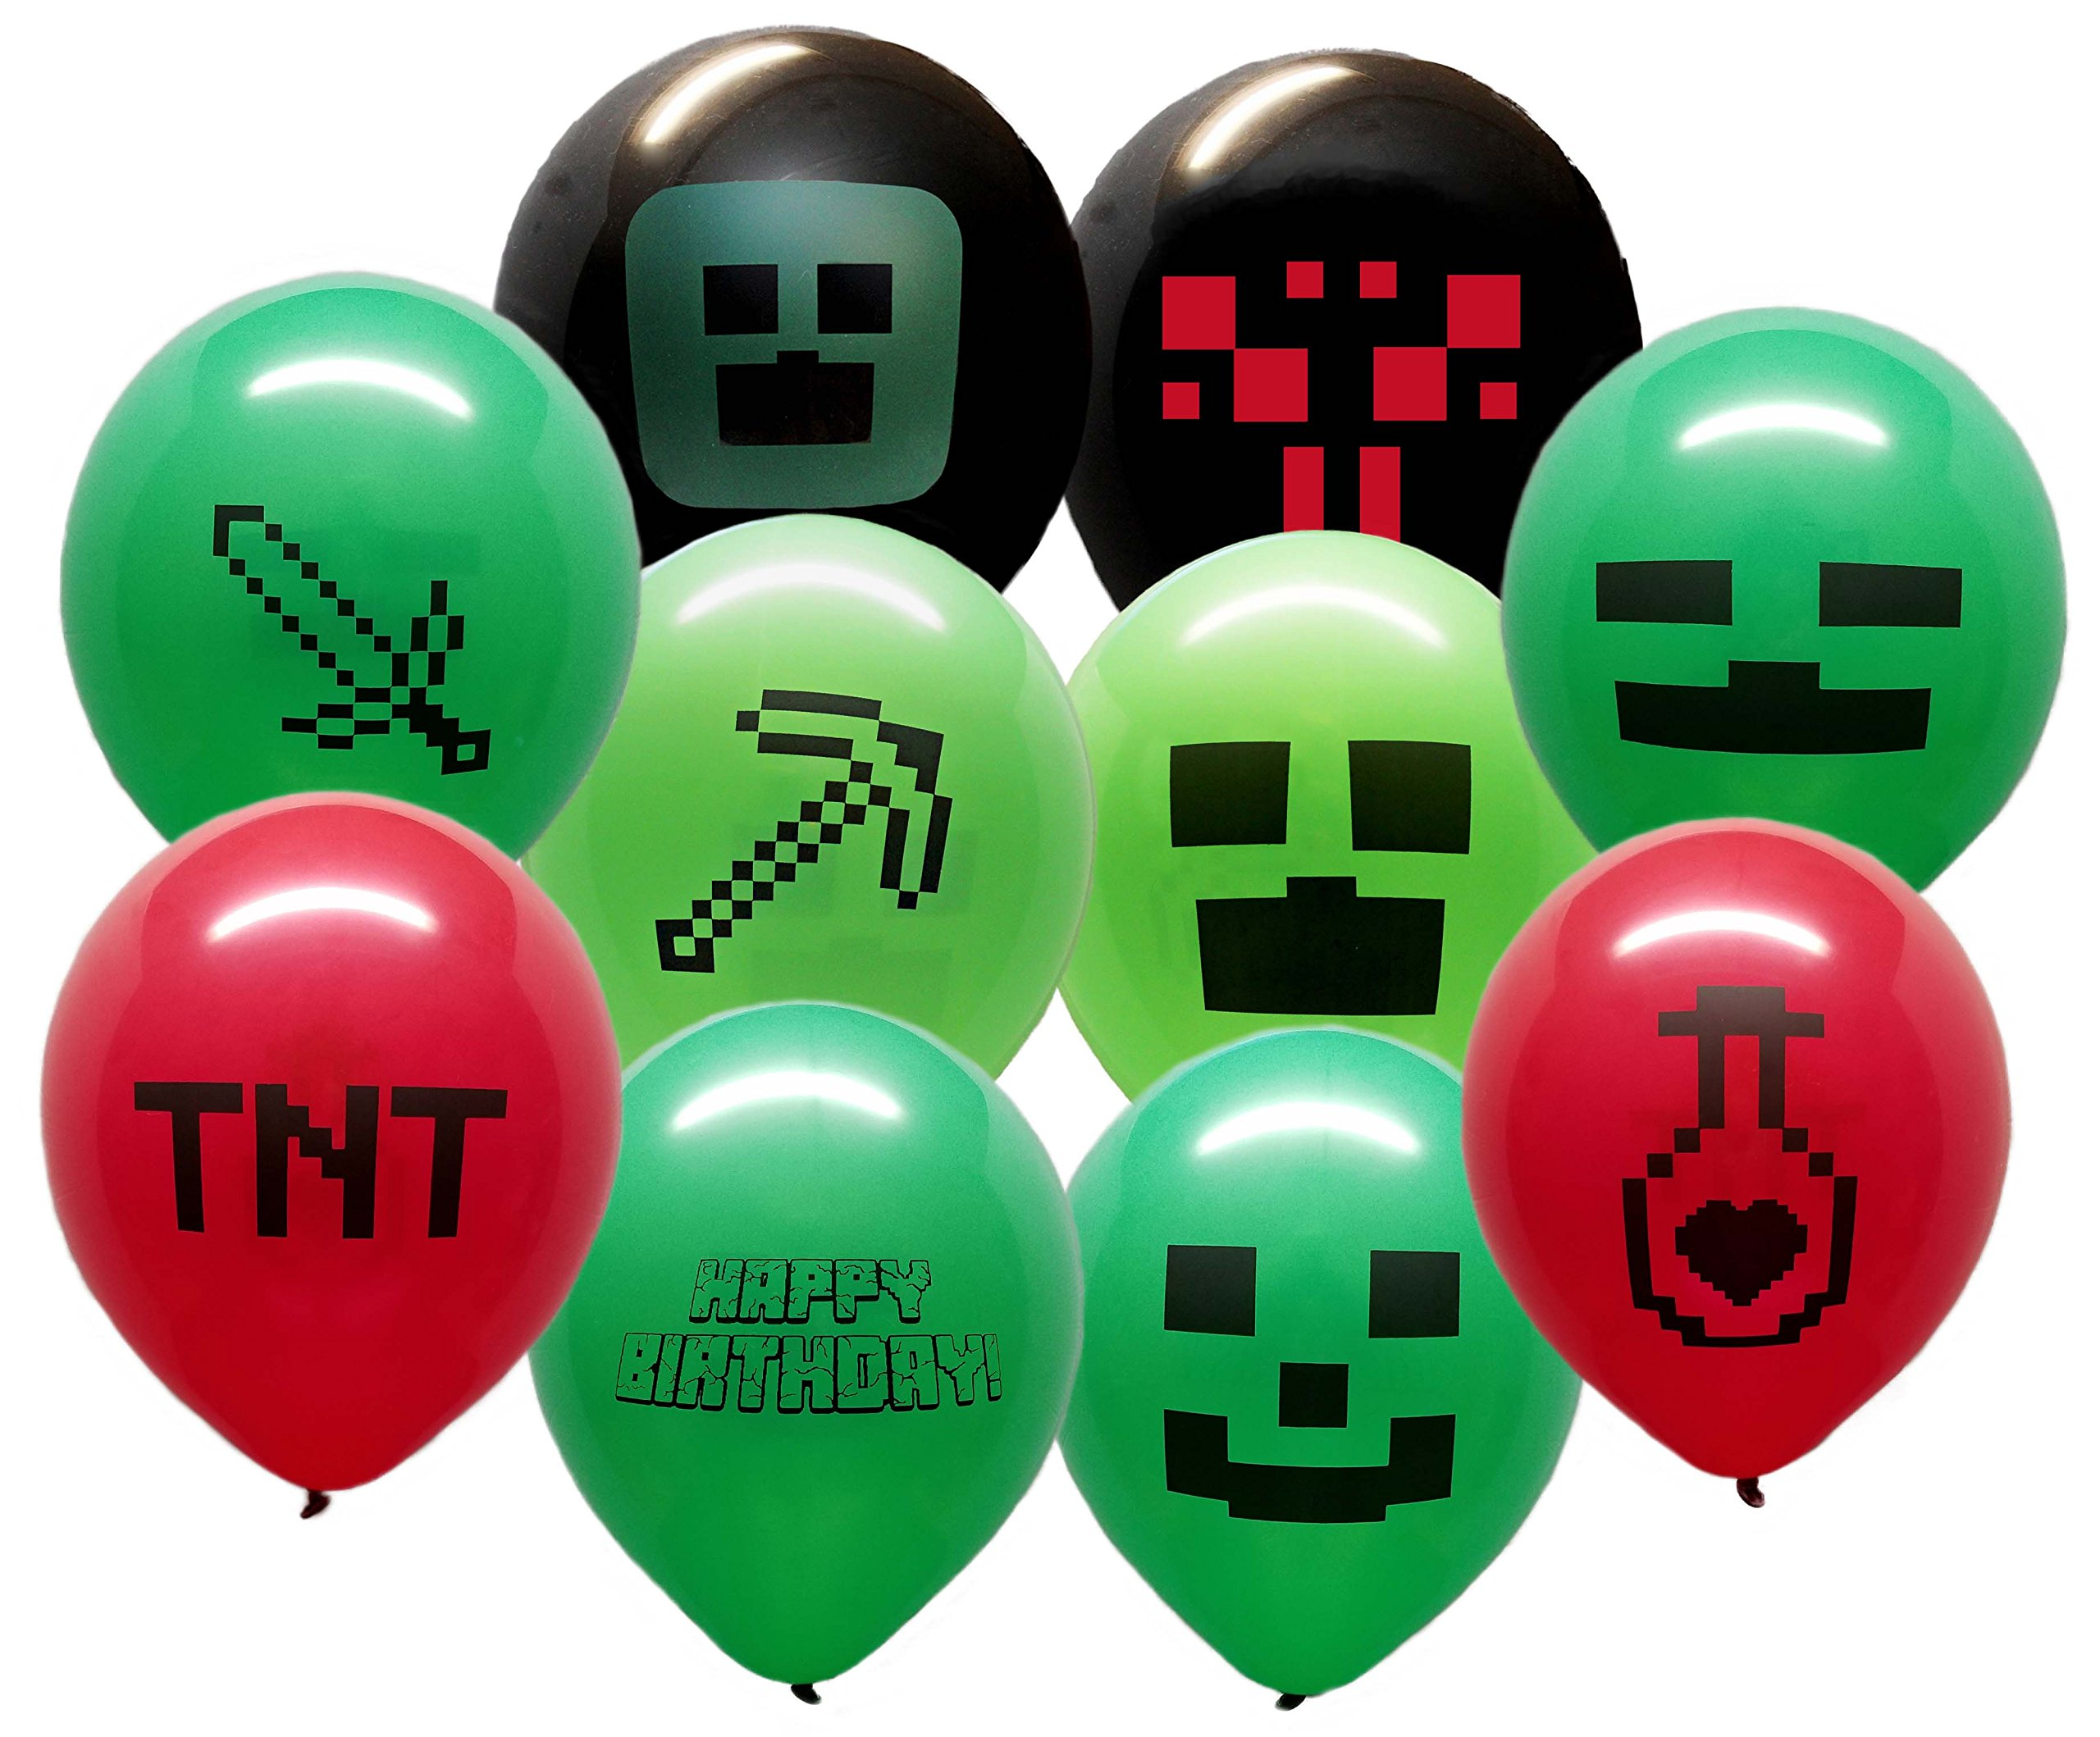 25 Pixel Style Miner Party Balloon Pack - Large 12'' Latex Balloons by Jade's Party Packs (Image #7)